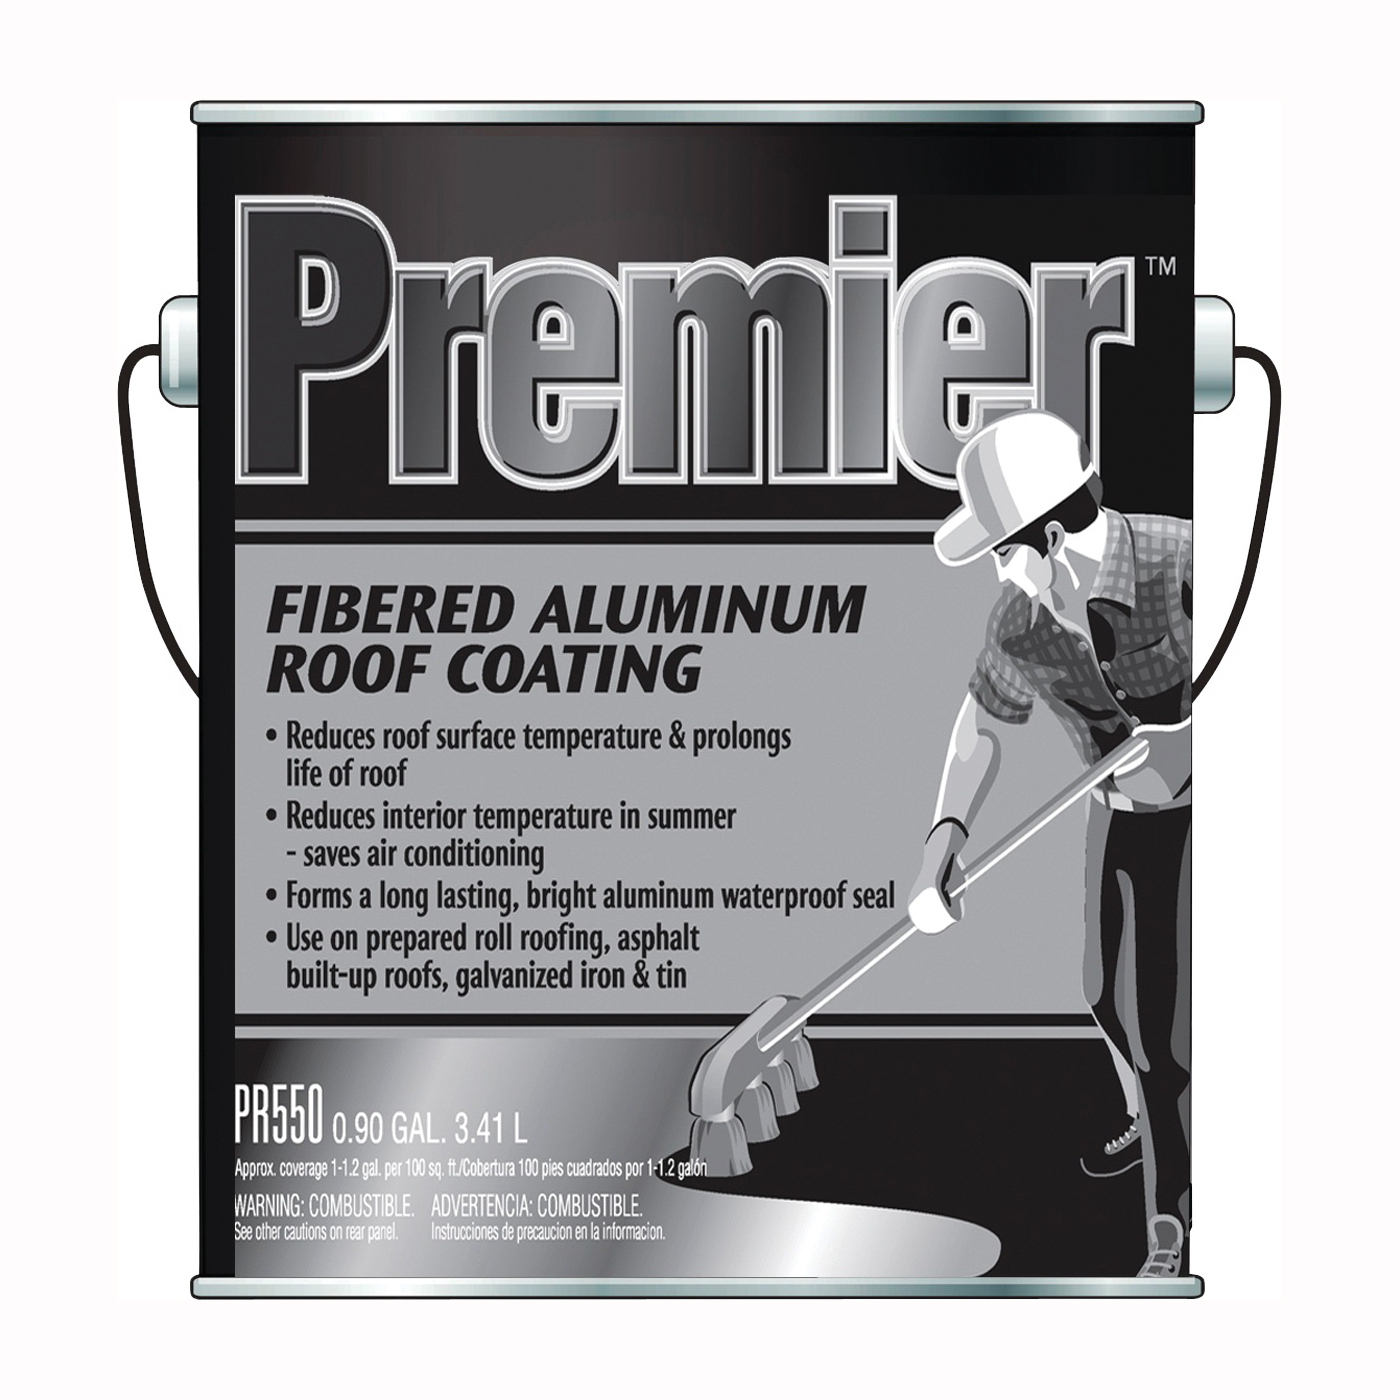 Picture of Henry PR550042 Aluminum Roof Coating, Silver, 3.41 L, Can, Liquid